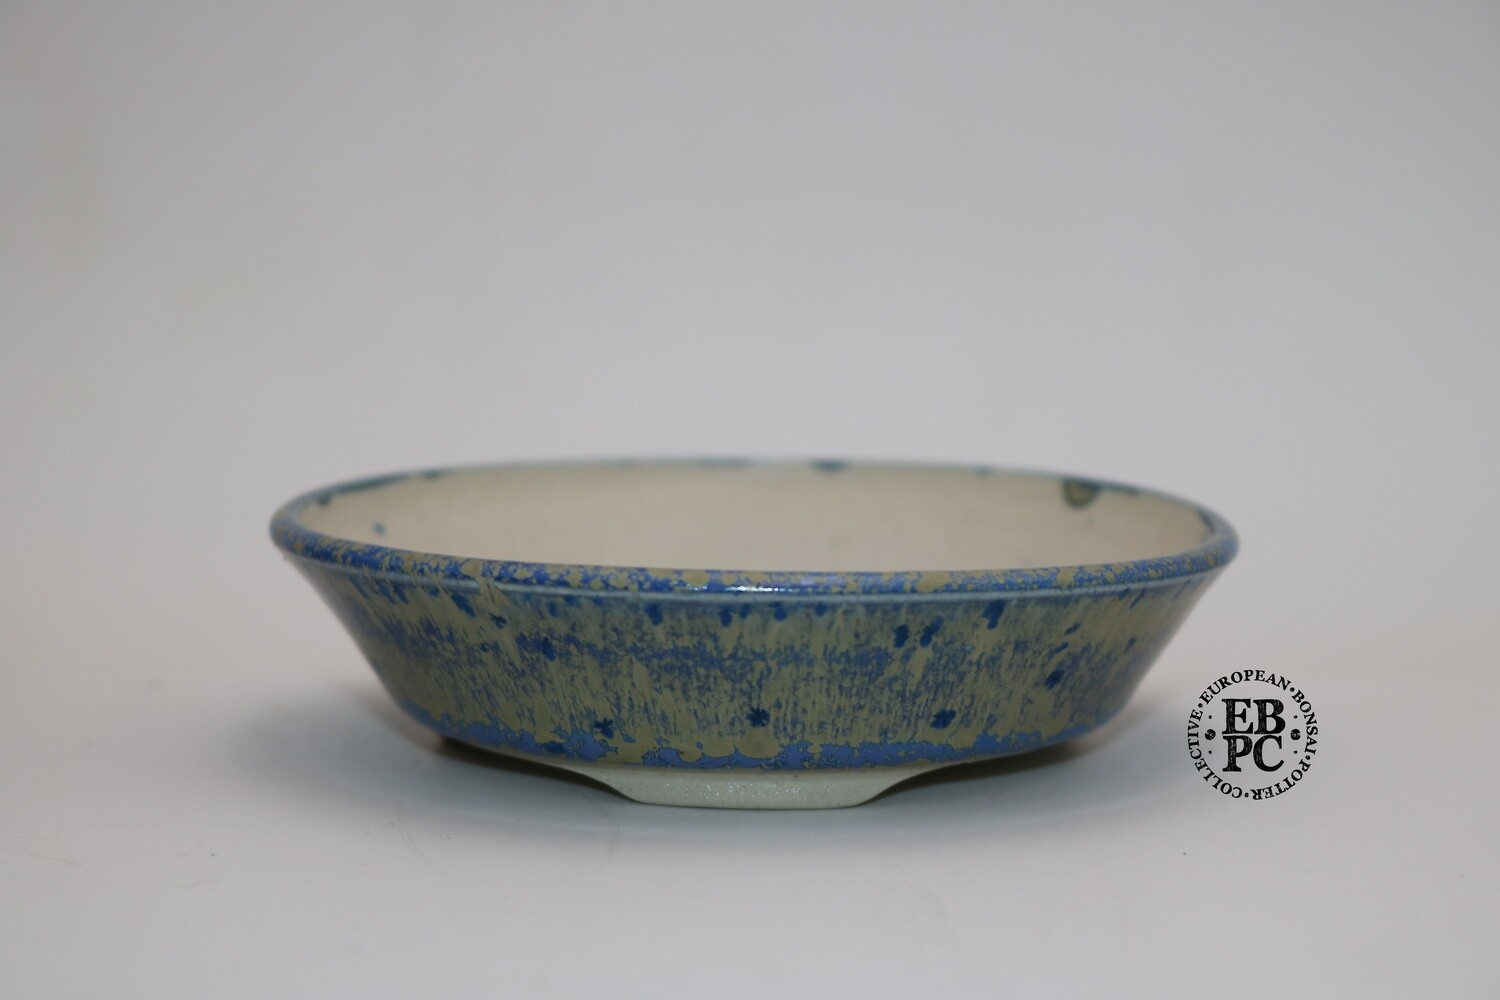 SOLD - PAS Pots - 10.9cm  Round; Shohin / Accent pot; Hand Thrown; Blue & Tan/Light Brown Glaze; Detailed foot ring; Patricia